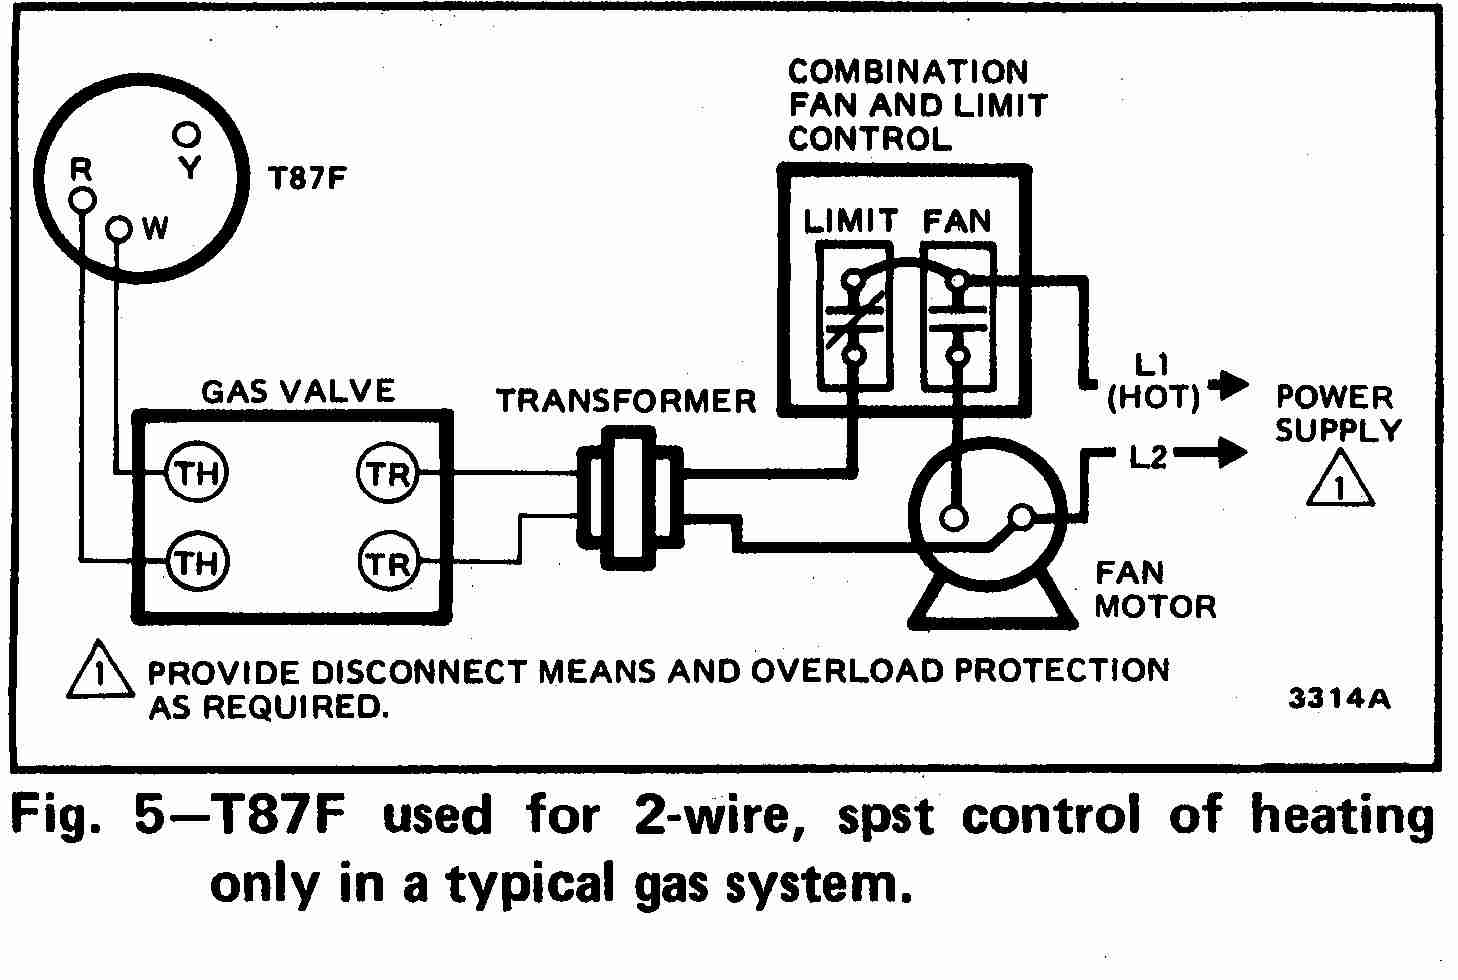 Room Thermostat Wiring Diagrams For Hvac Systems - Wiring Diagram For Thermostats